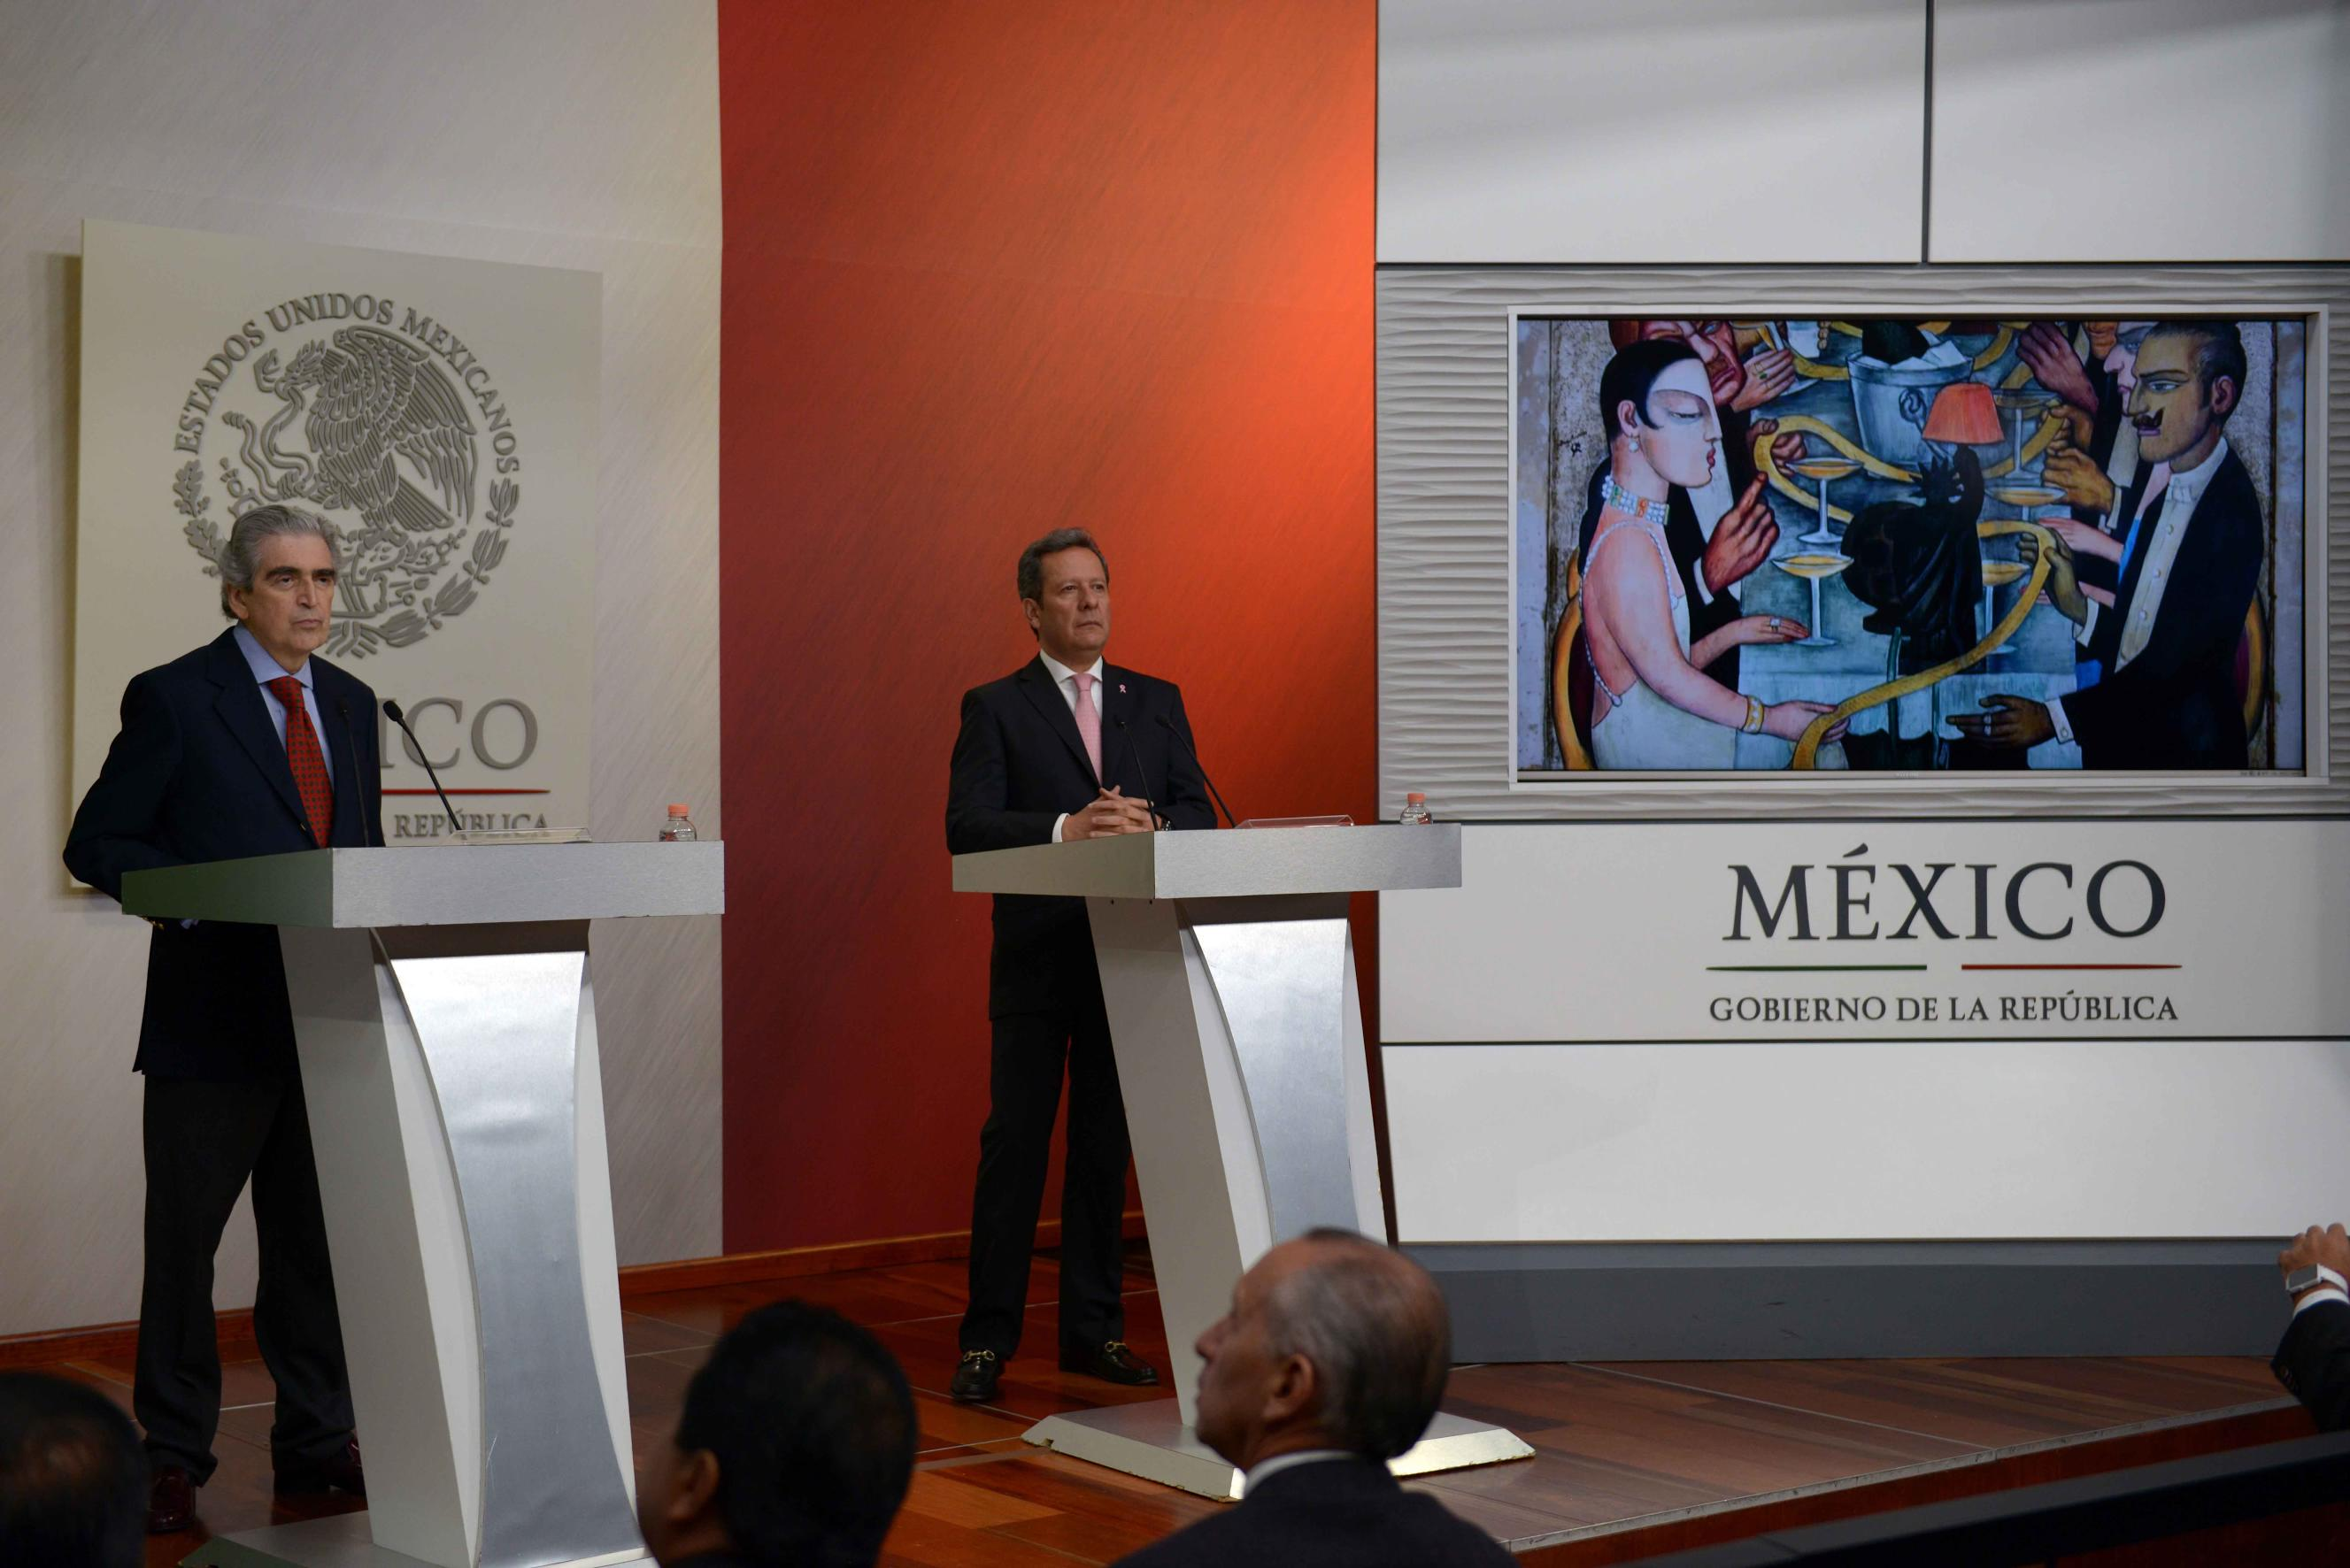 """Through the Secretariat of Culture, led by Rafael Tovar y de Teresa, significant examples of work by Mexican artists have been taken to virtually every region in the world"": ES"